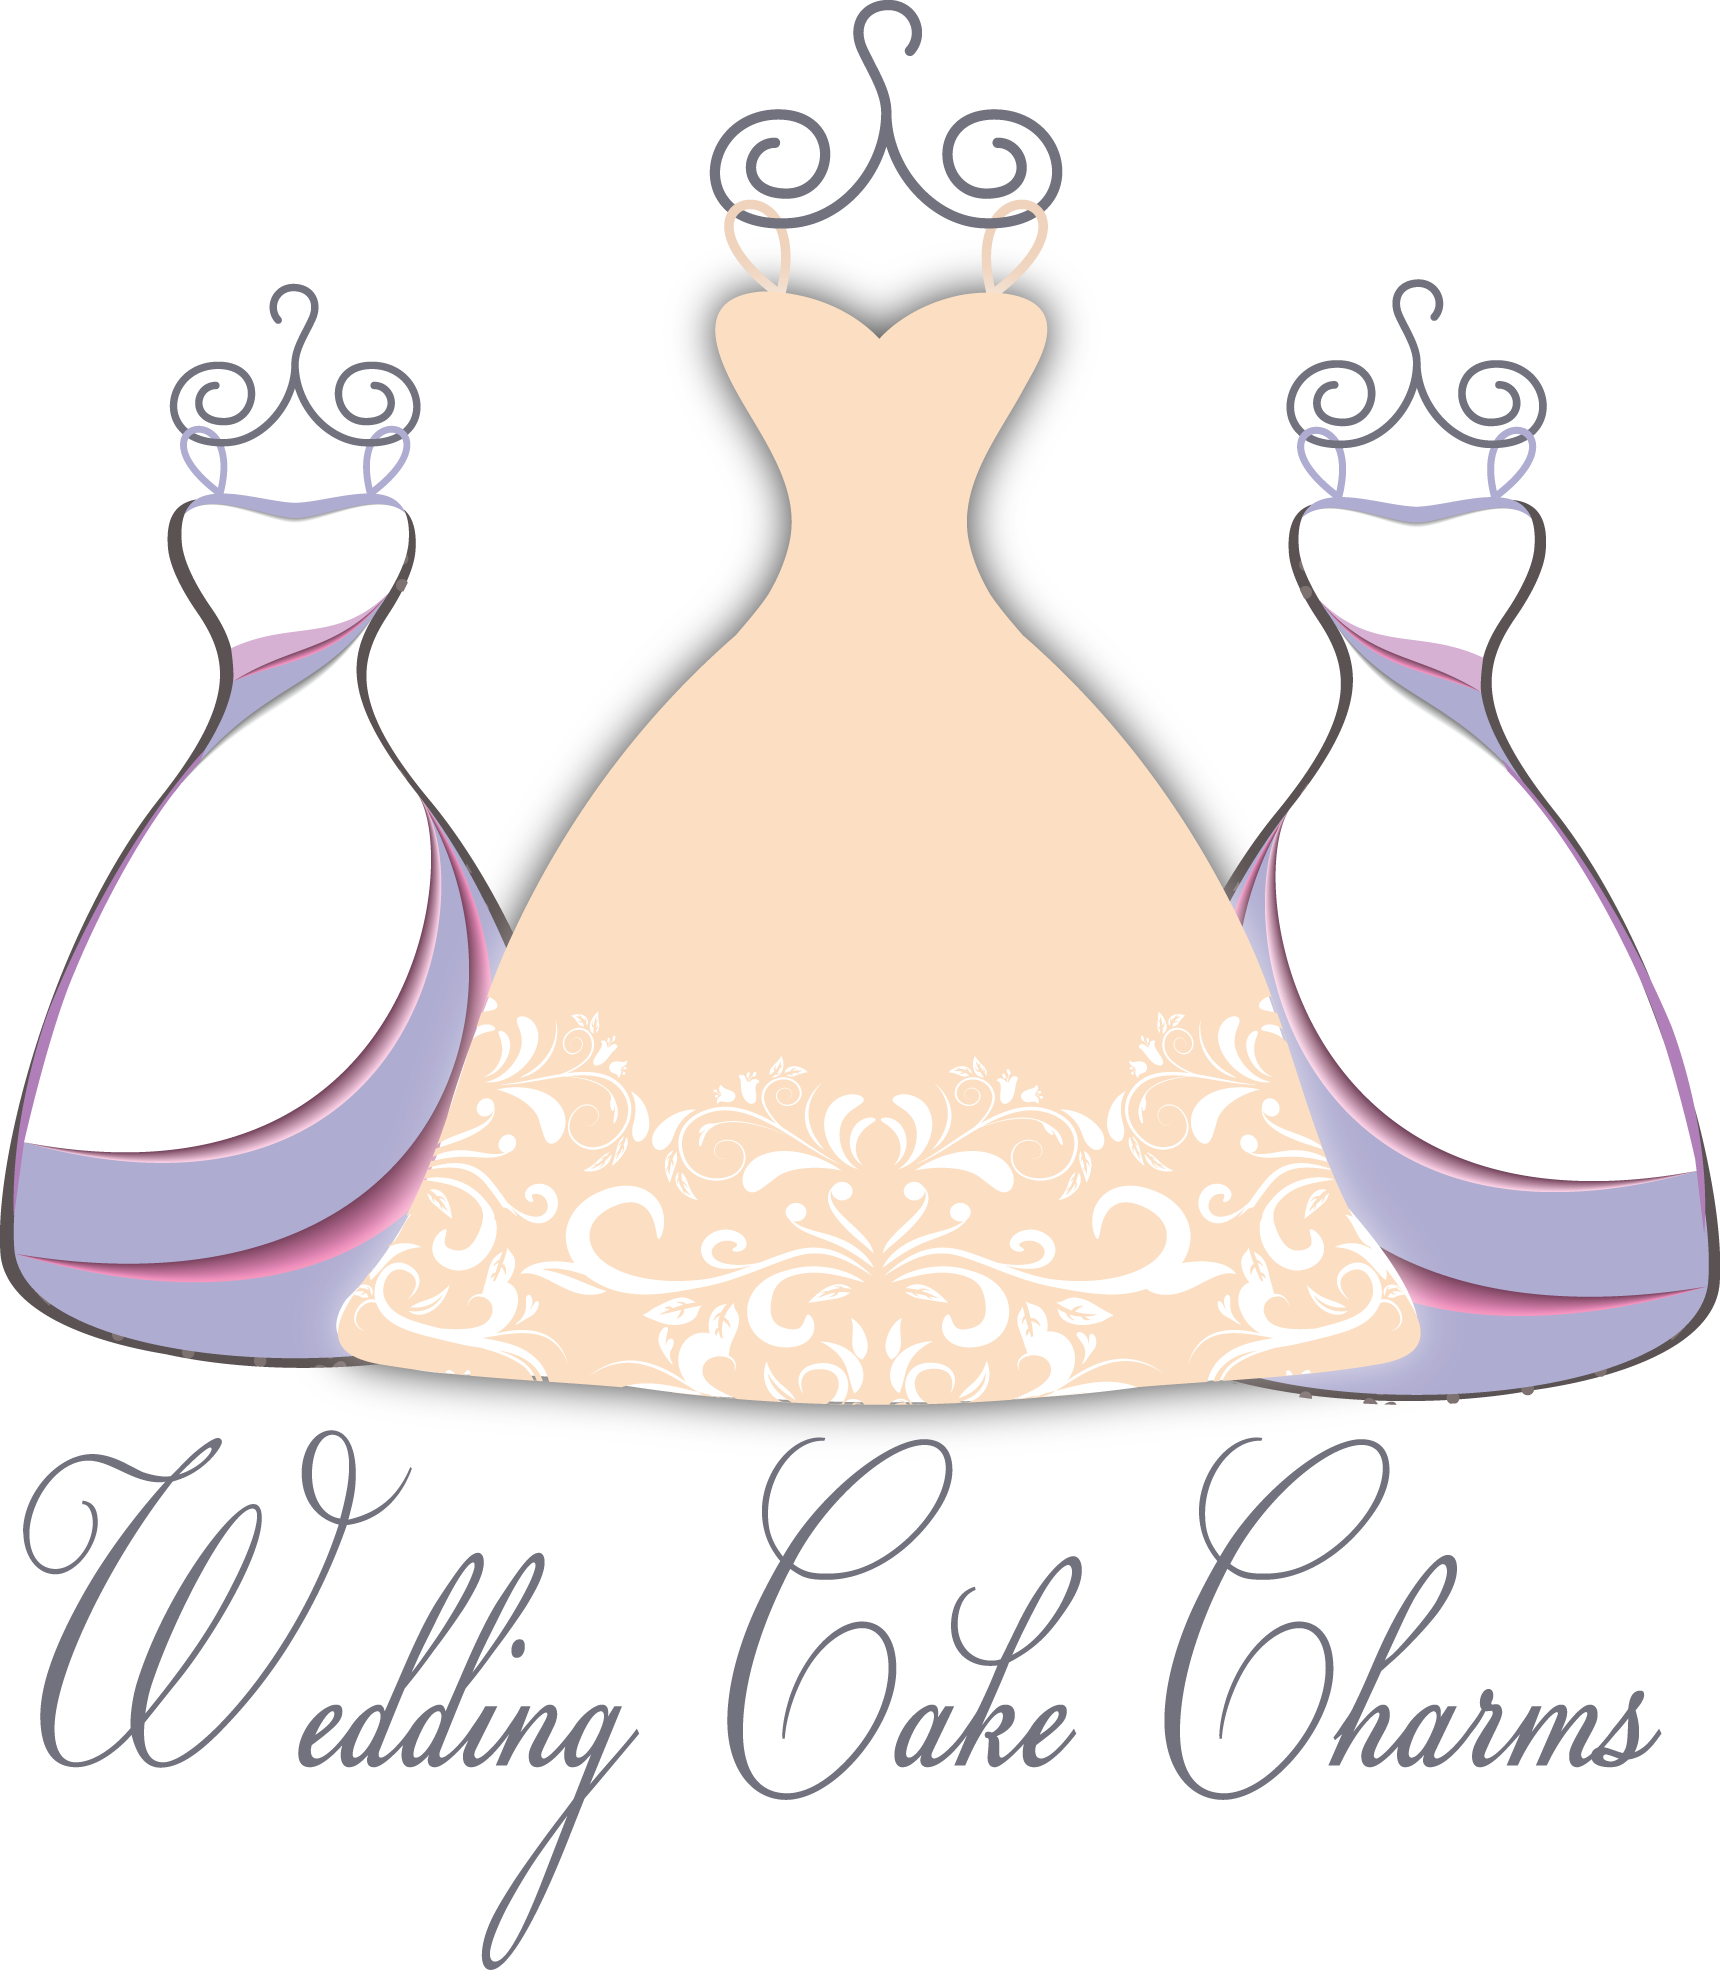 Wedding Cake Charms and Cake Pulls for Bridesmaid Luncheon